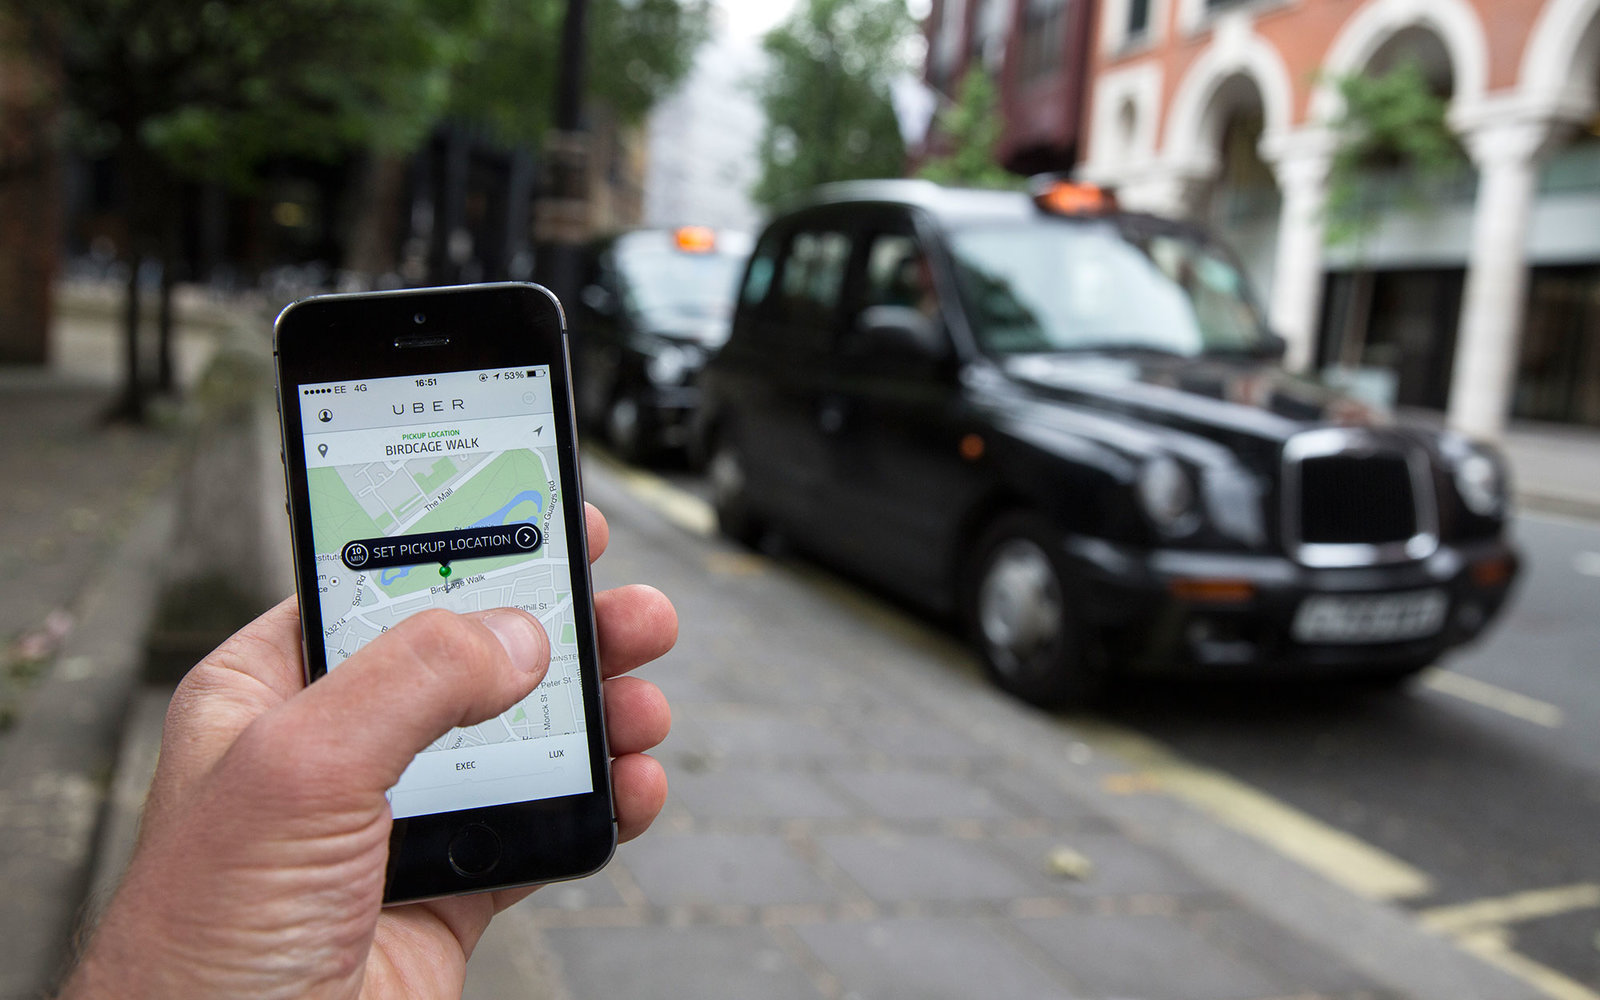 LONDON, ENGLAND - JUNE 02: In this photo illustration, a smartphone displays the 'Uber' mobile application which allows users to hail private-hire cars from any location on June 2, 2014 in London, England.